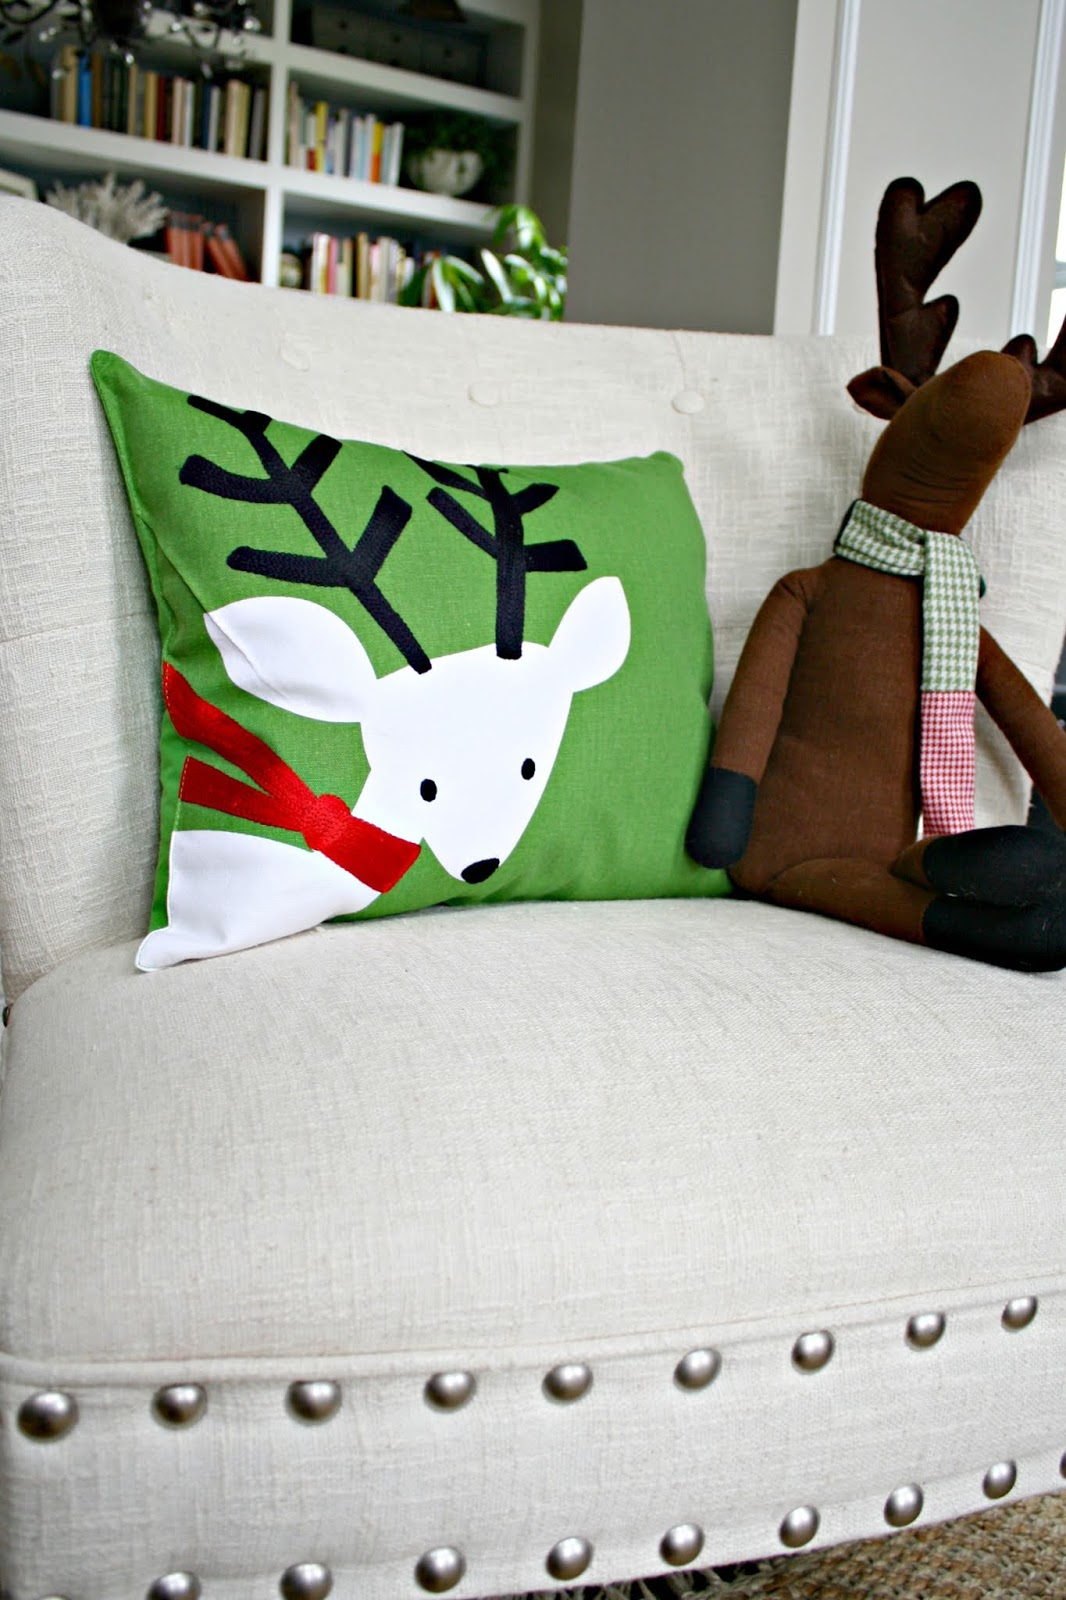 Making Christmas pillows out of placemats